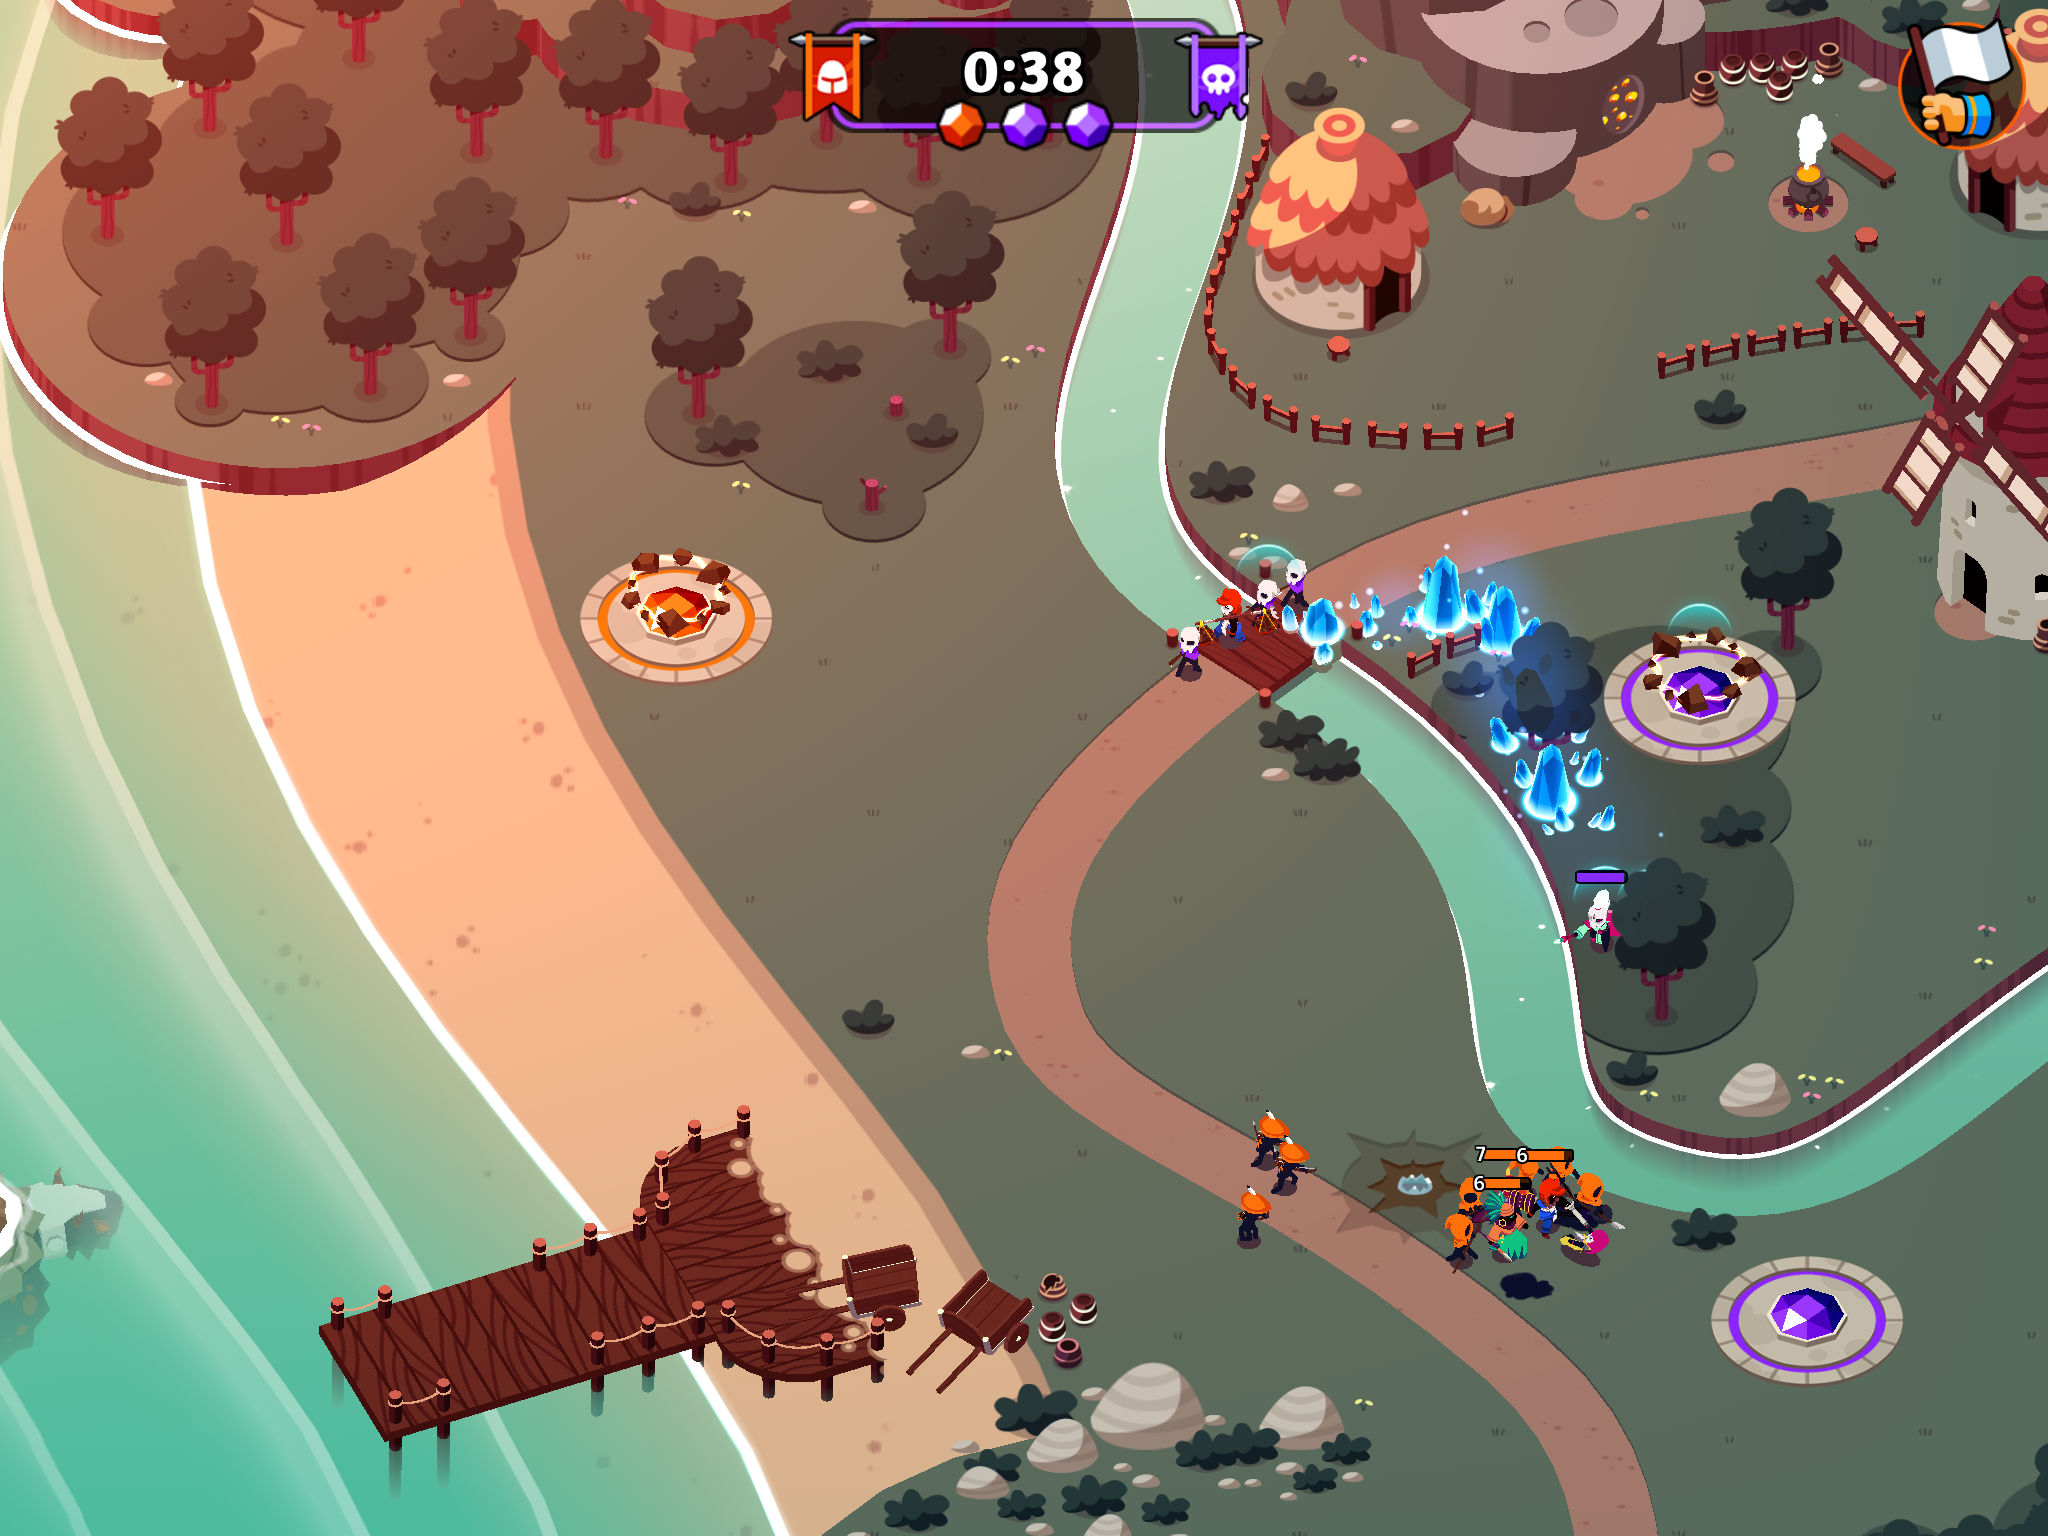 Battleplans review - A decent, easy-to-play strategy game